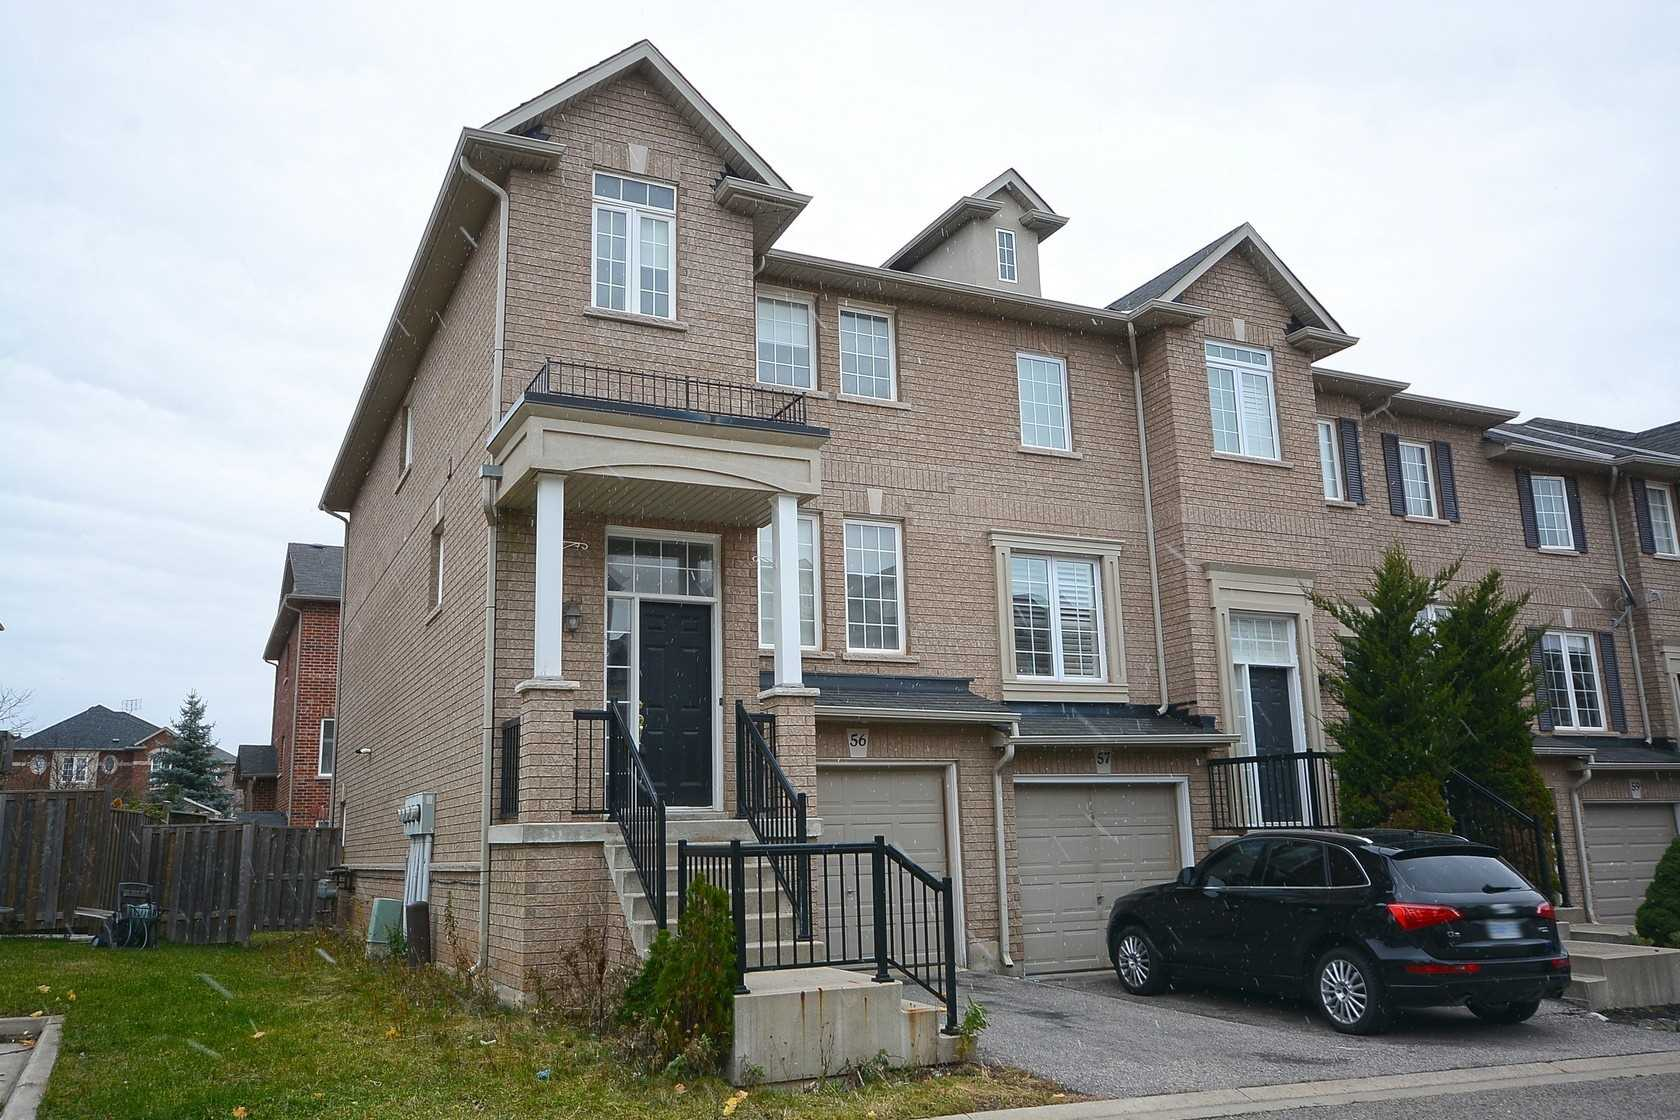 Buliding: 2280 Baronwood Drive, Oakville, ON